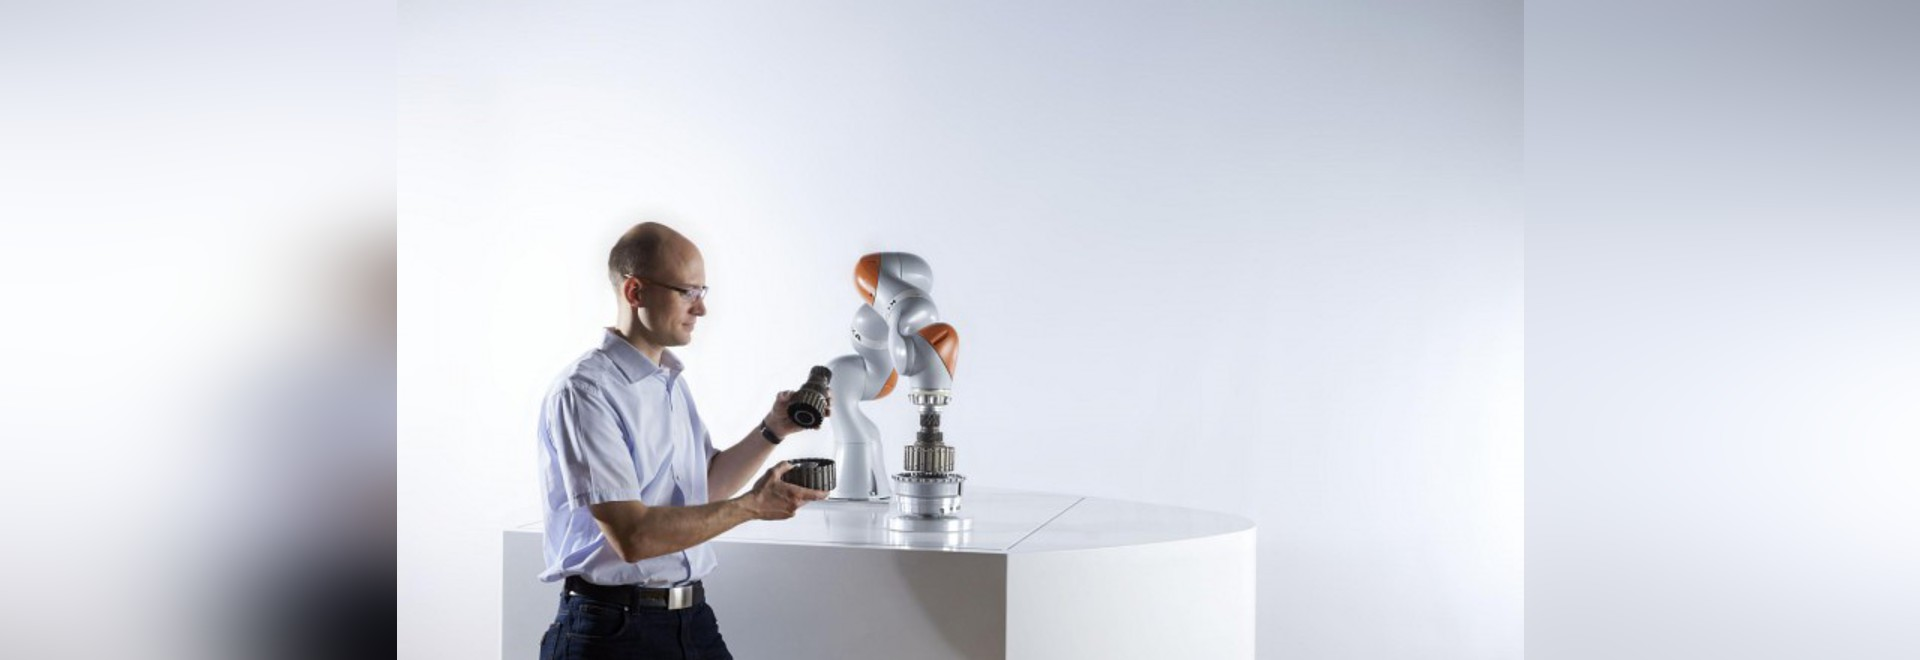 COBOTS: THE FUTURE OF HUMAN-ROBOT COLLABORATION